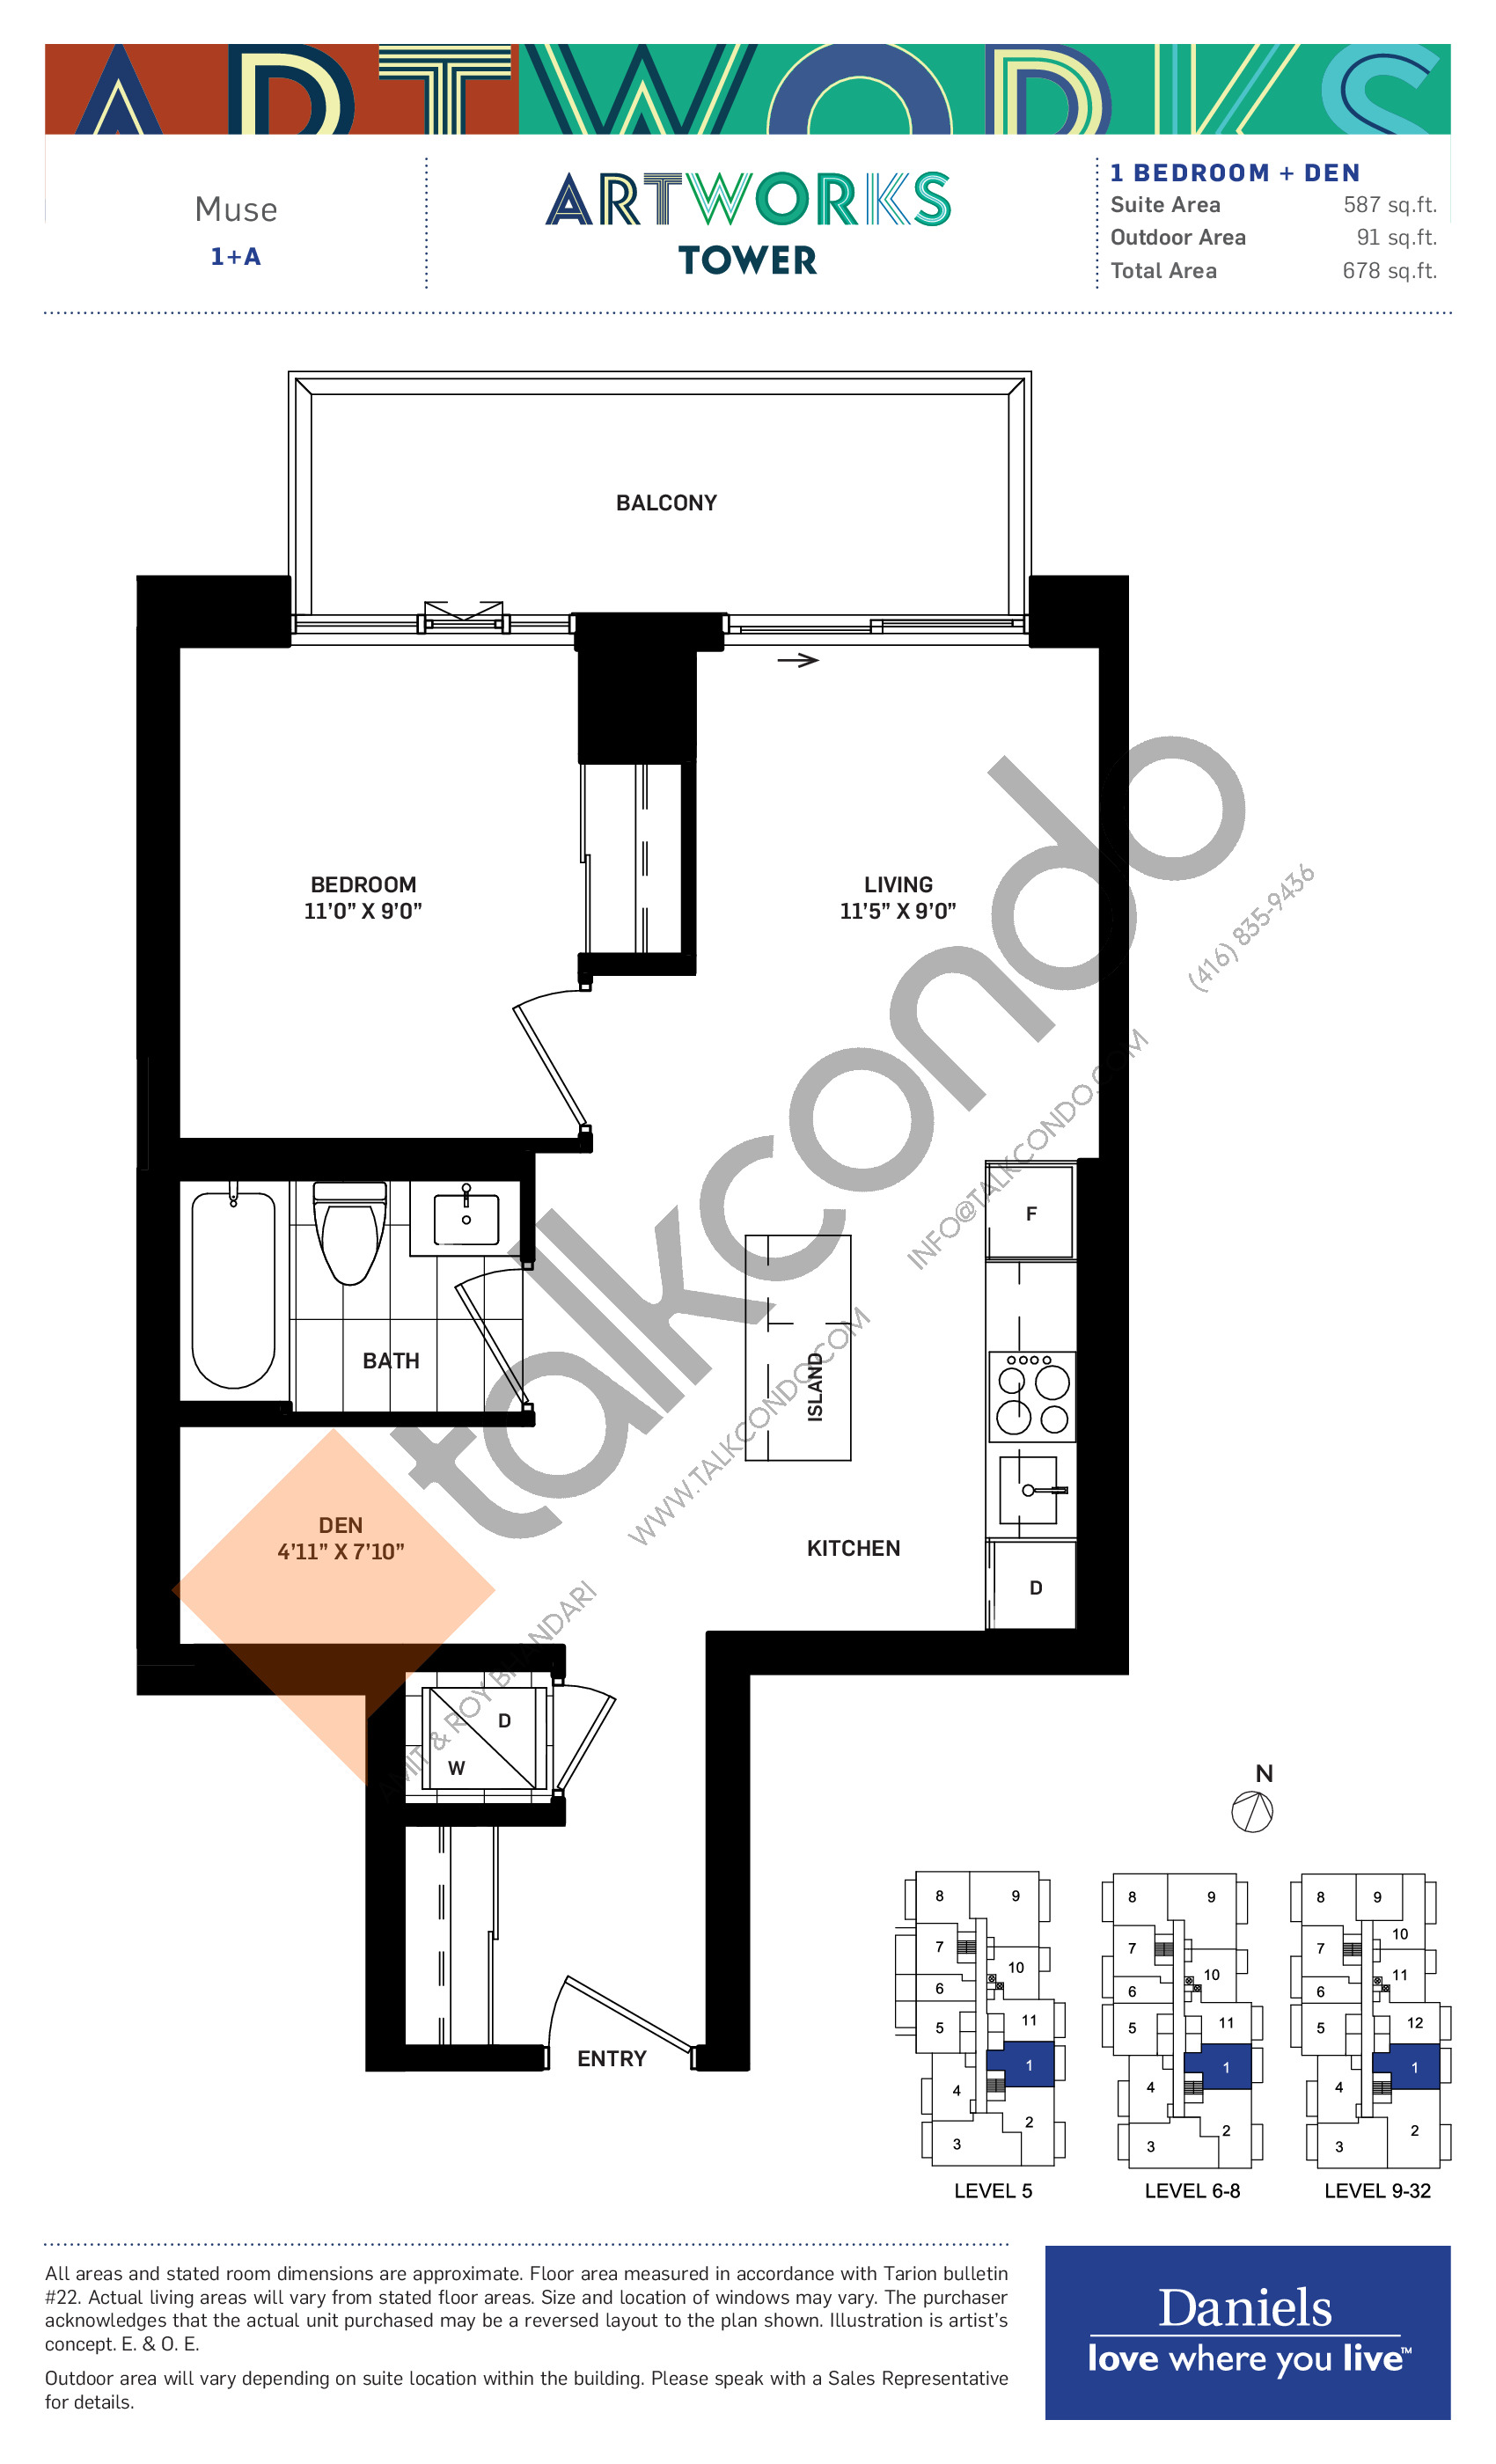 Muse Floor Plan at Artworks Tower Condos - 587 sq.ft